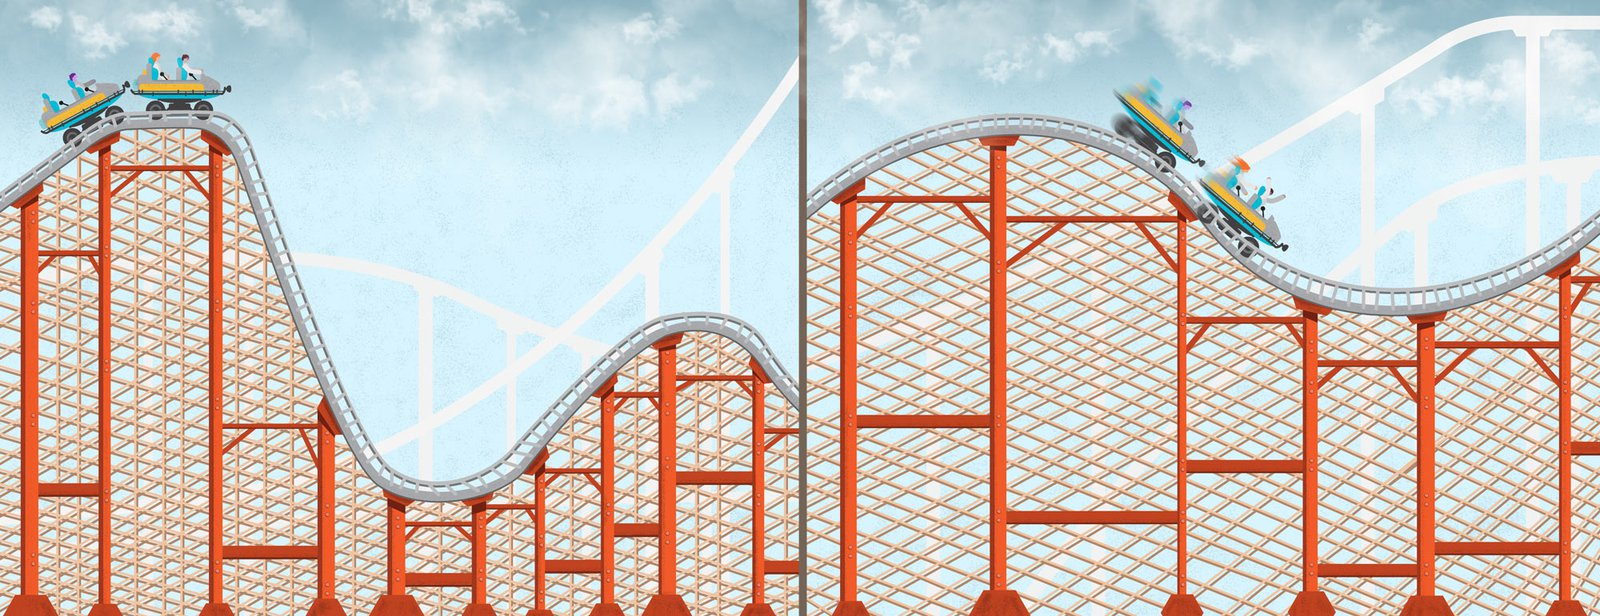 Side by side illustration of a roller coaster. On the left a coaster sits at the top about to go down a drop. On the right, the coaster speeds down a drop.